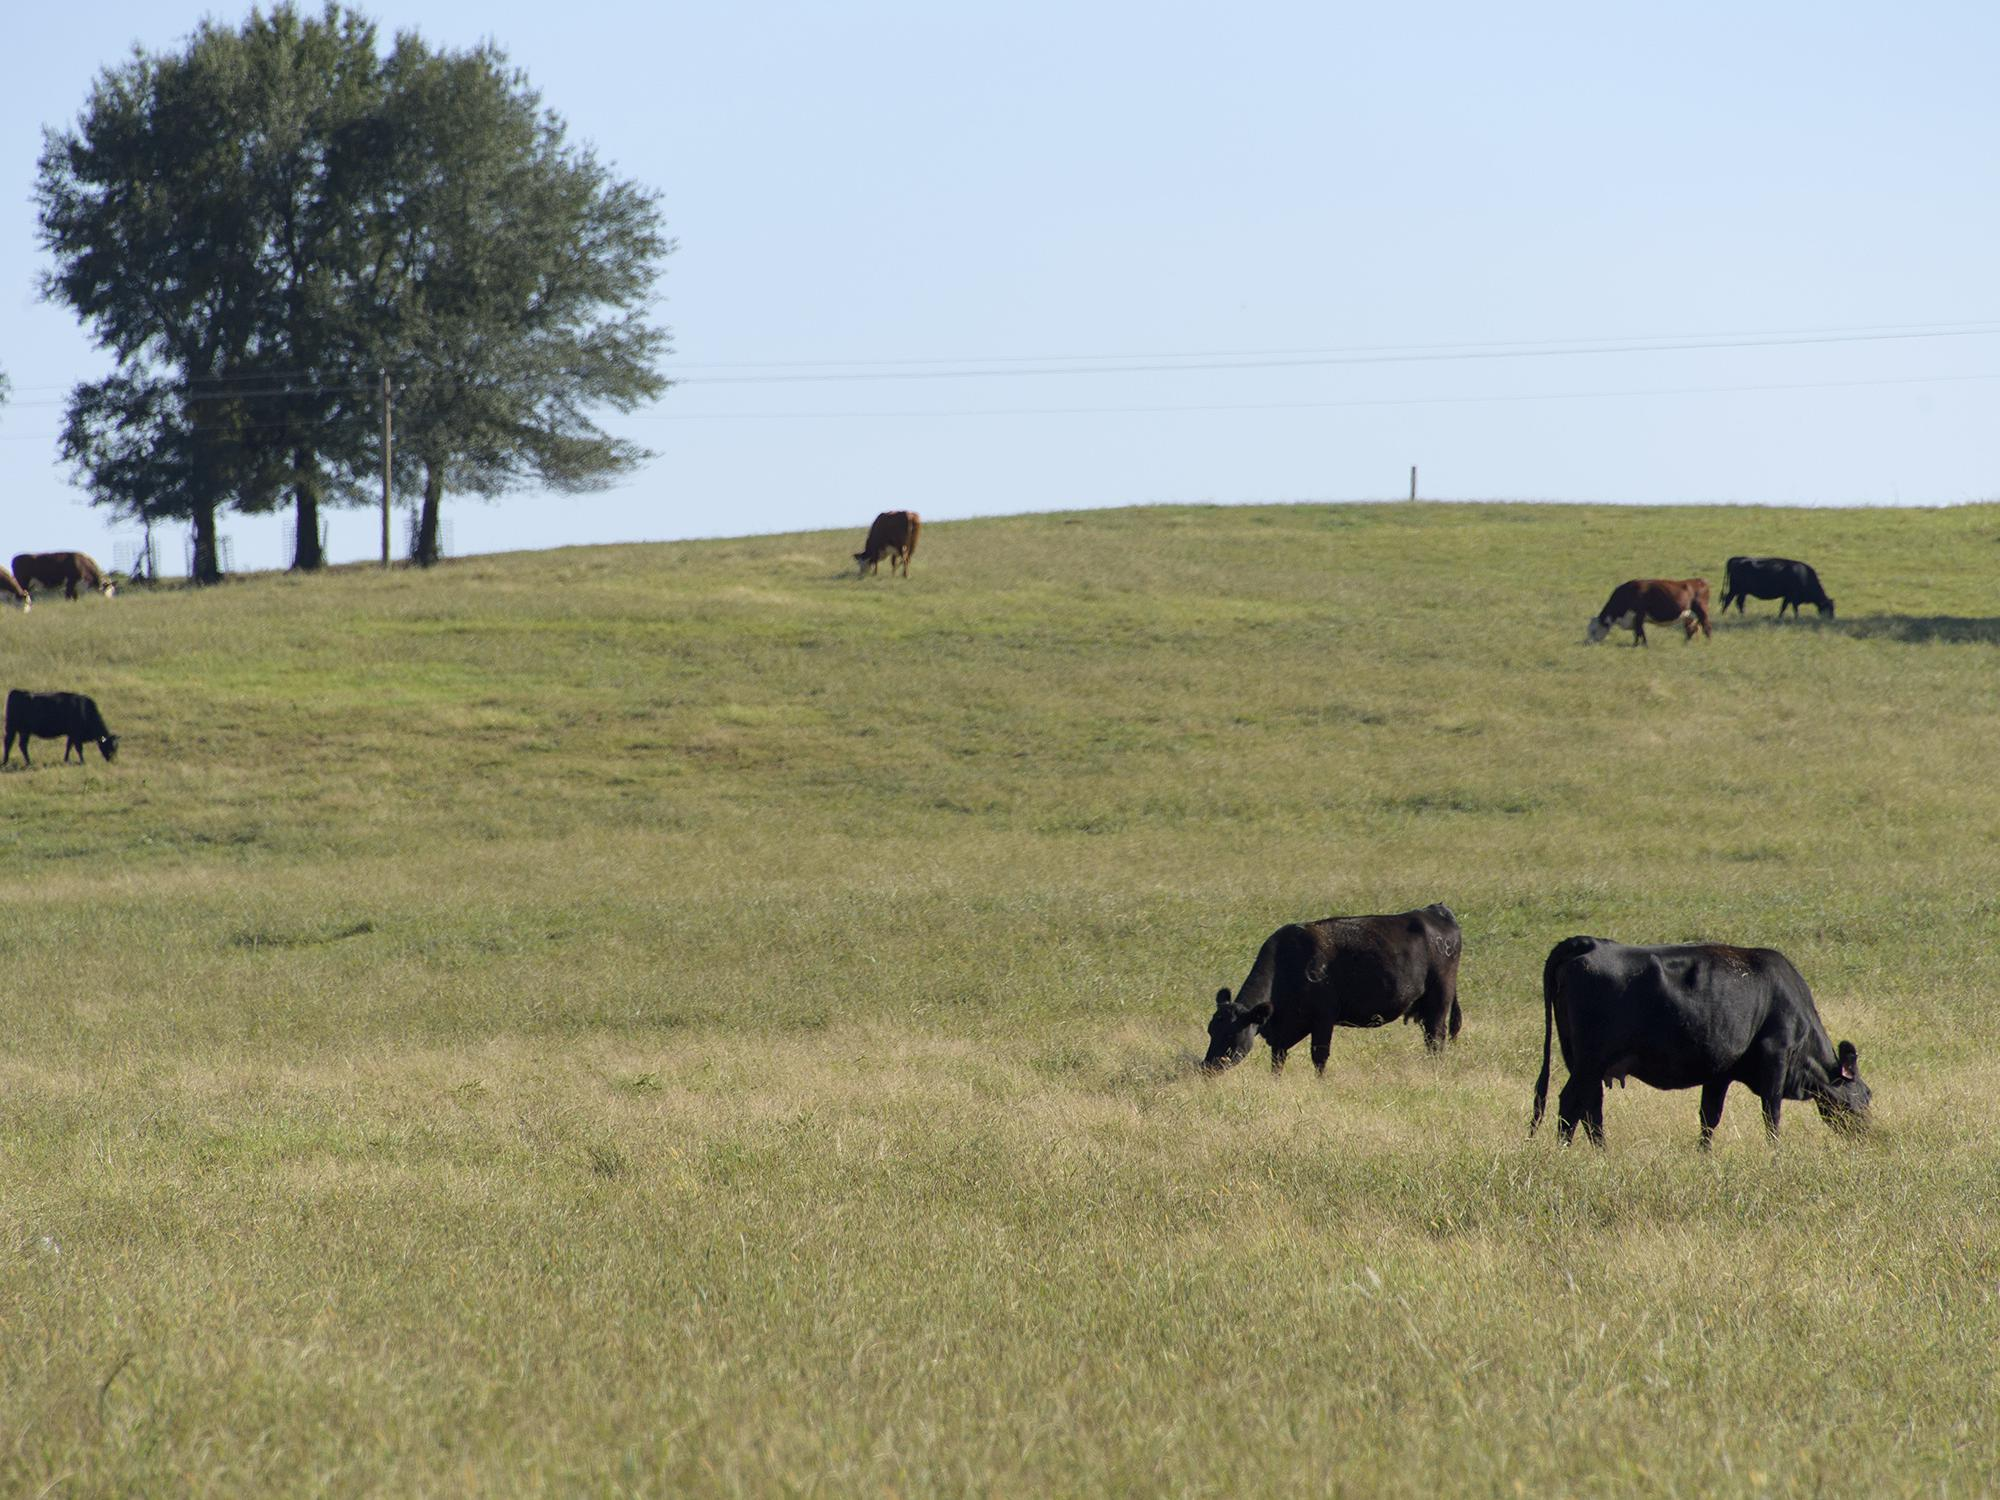 Cattle benefit from good pasture management that minimizes weed development during dry periods and helps pastures ahead of the dormant season. These beef cattle were photographed on the Mississippi State University H.H. Leveck Animal Research Center near Starkville on Sept. 29, 2016. (Photo by MSU Extension Service/Kevin Hudson)